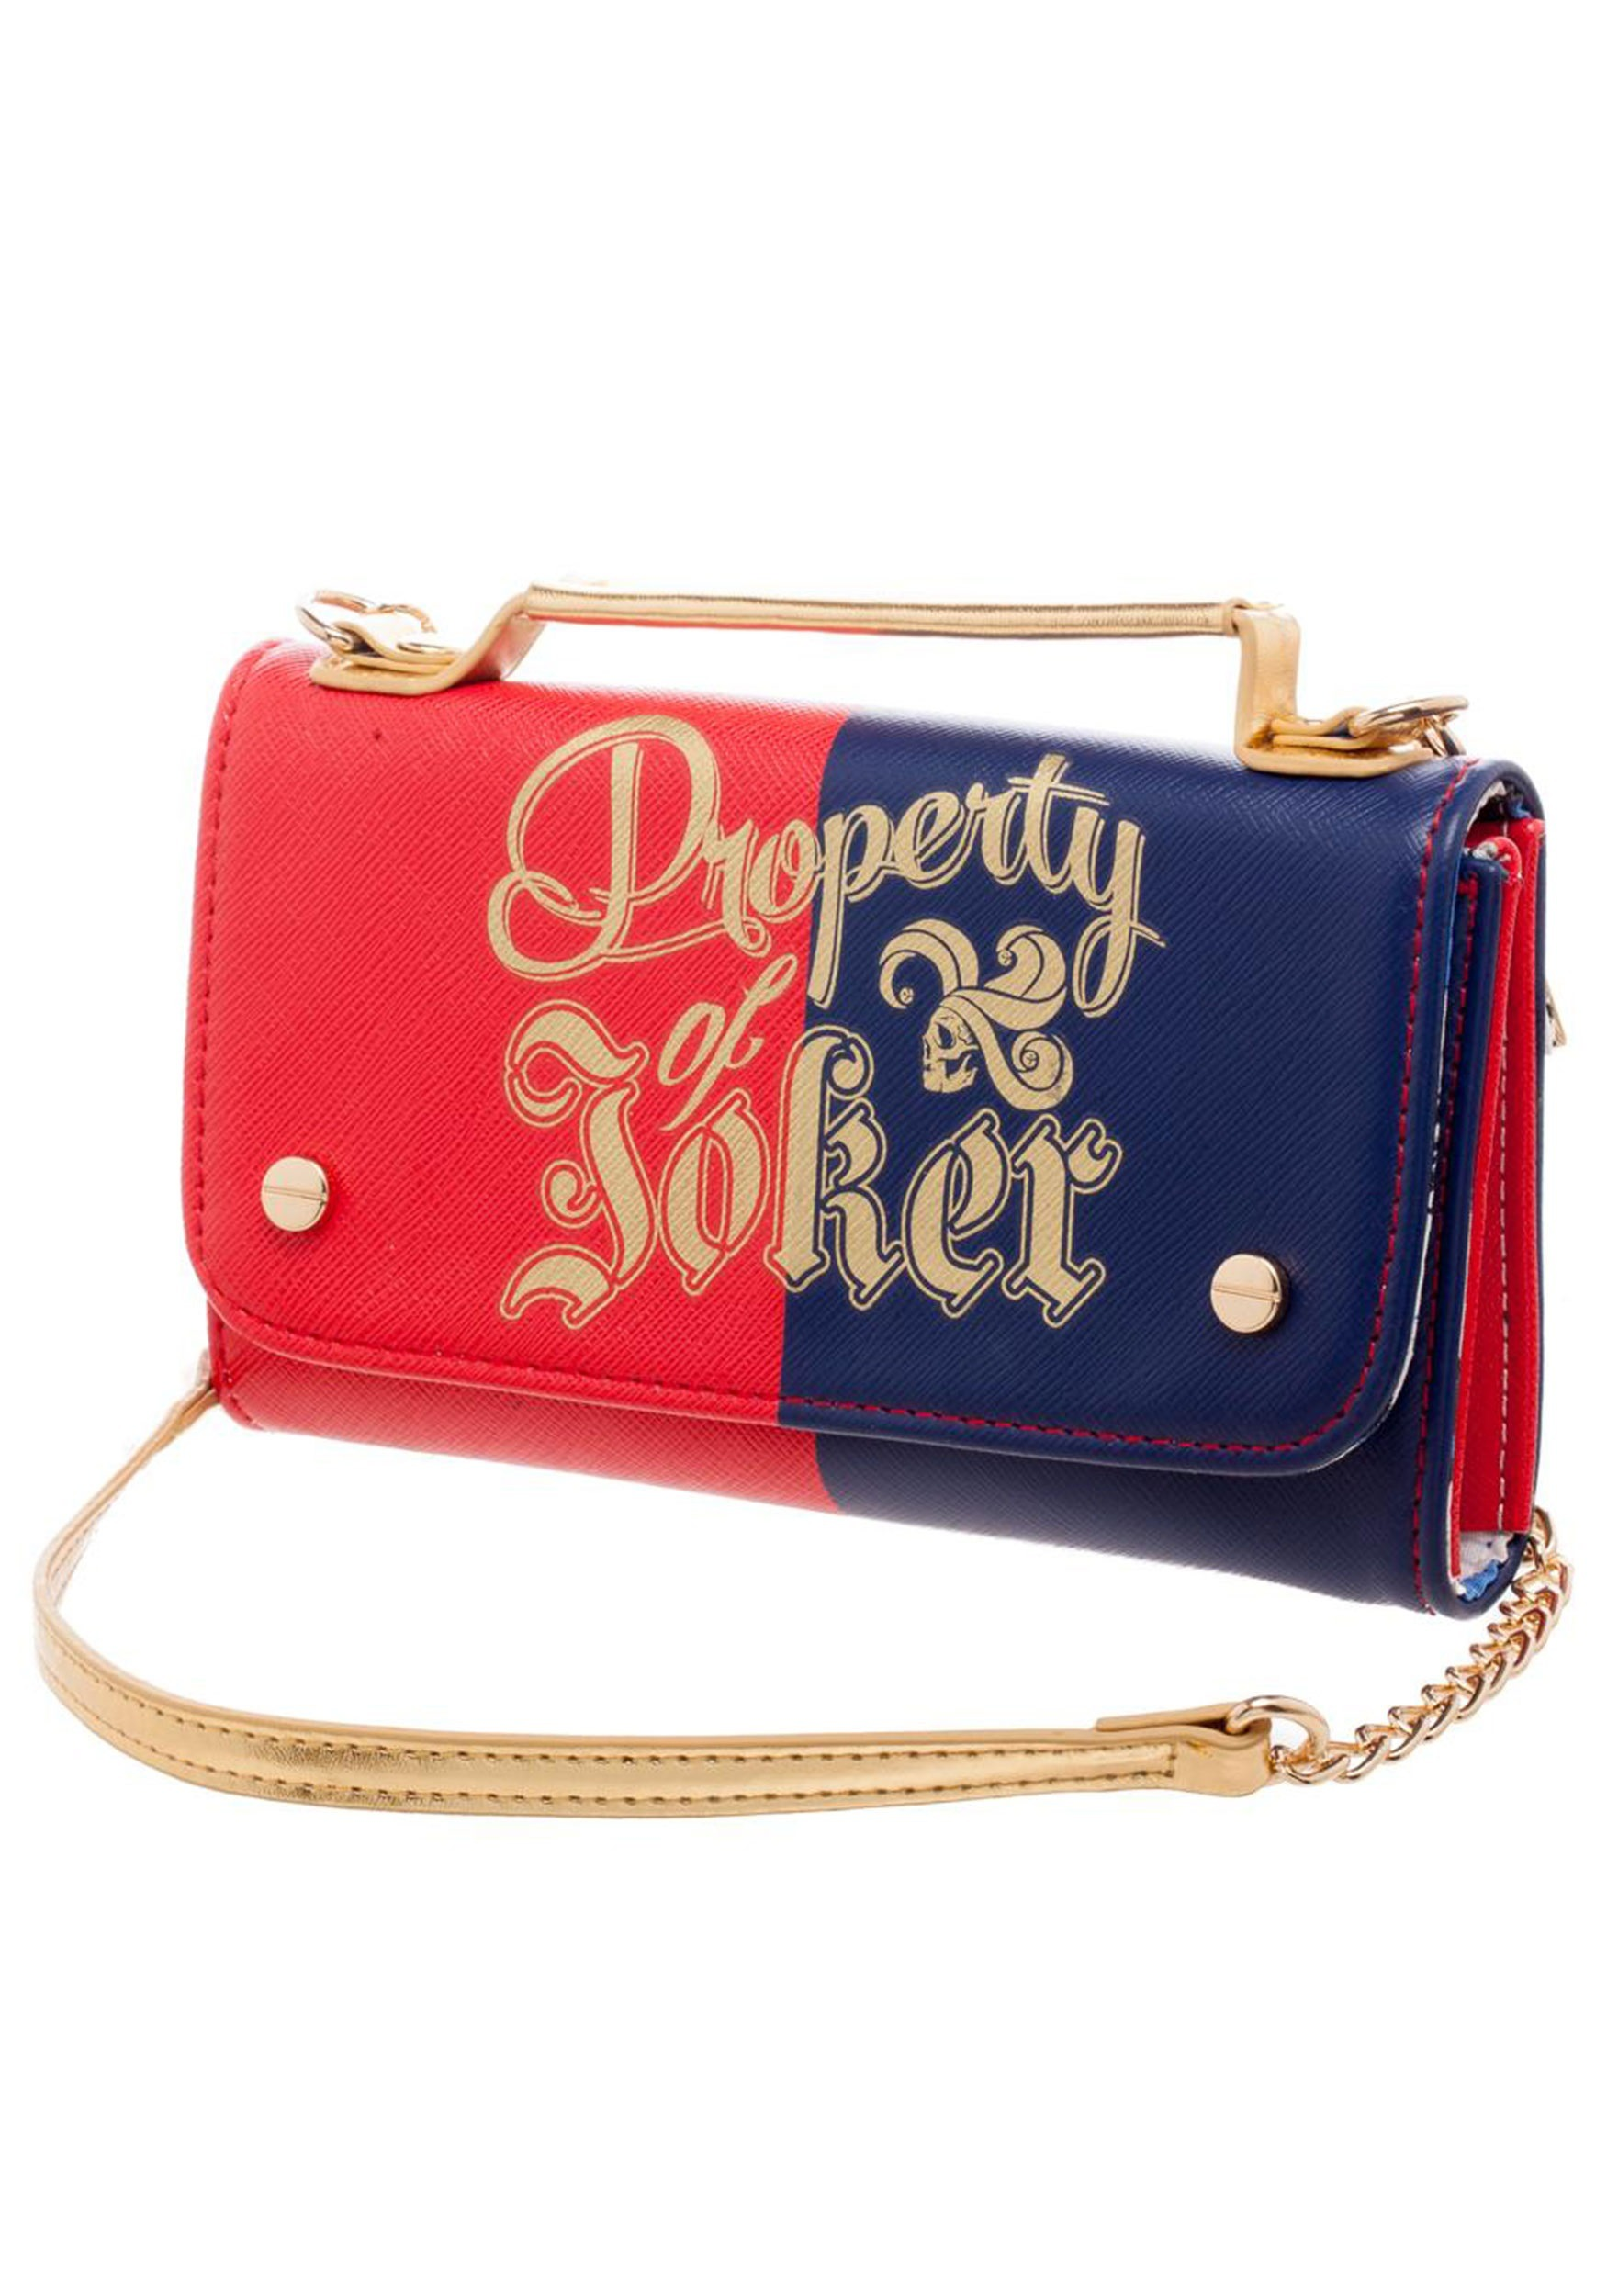 89d751d7e24 Property of Joker Chain Purse for Women